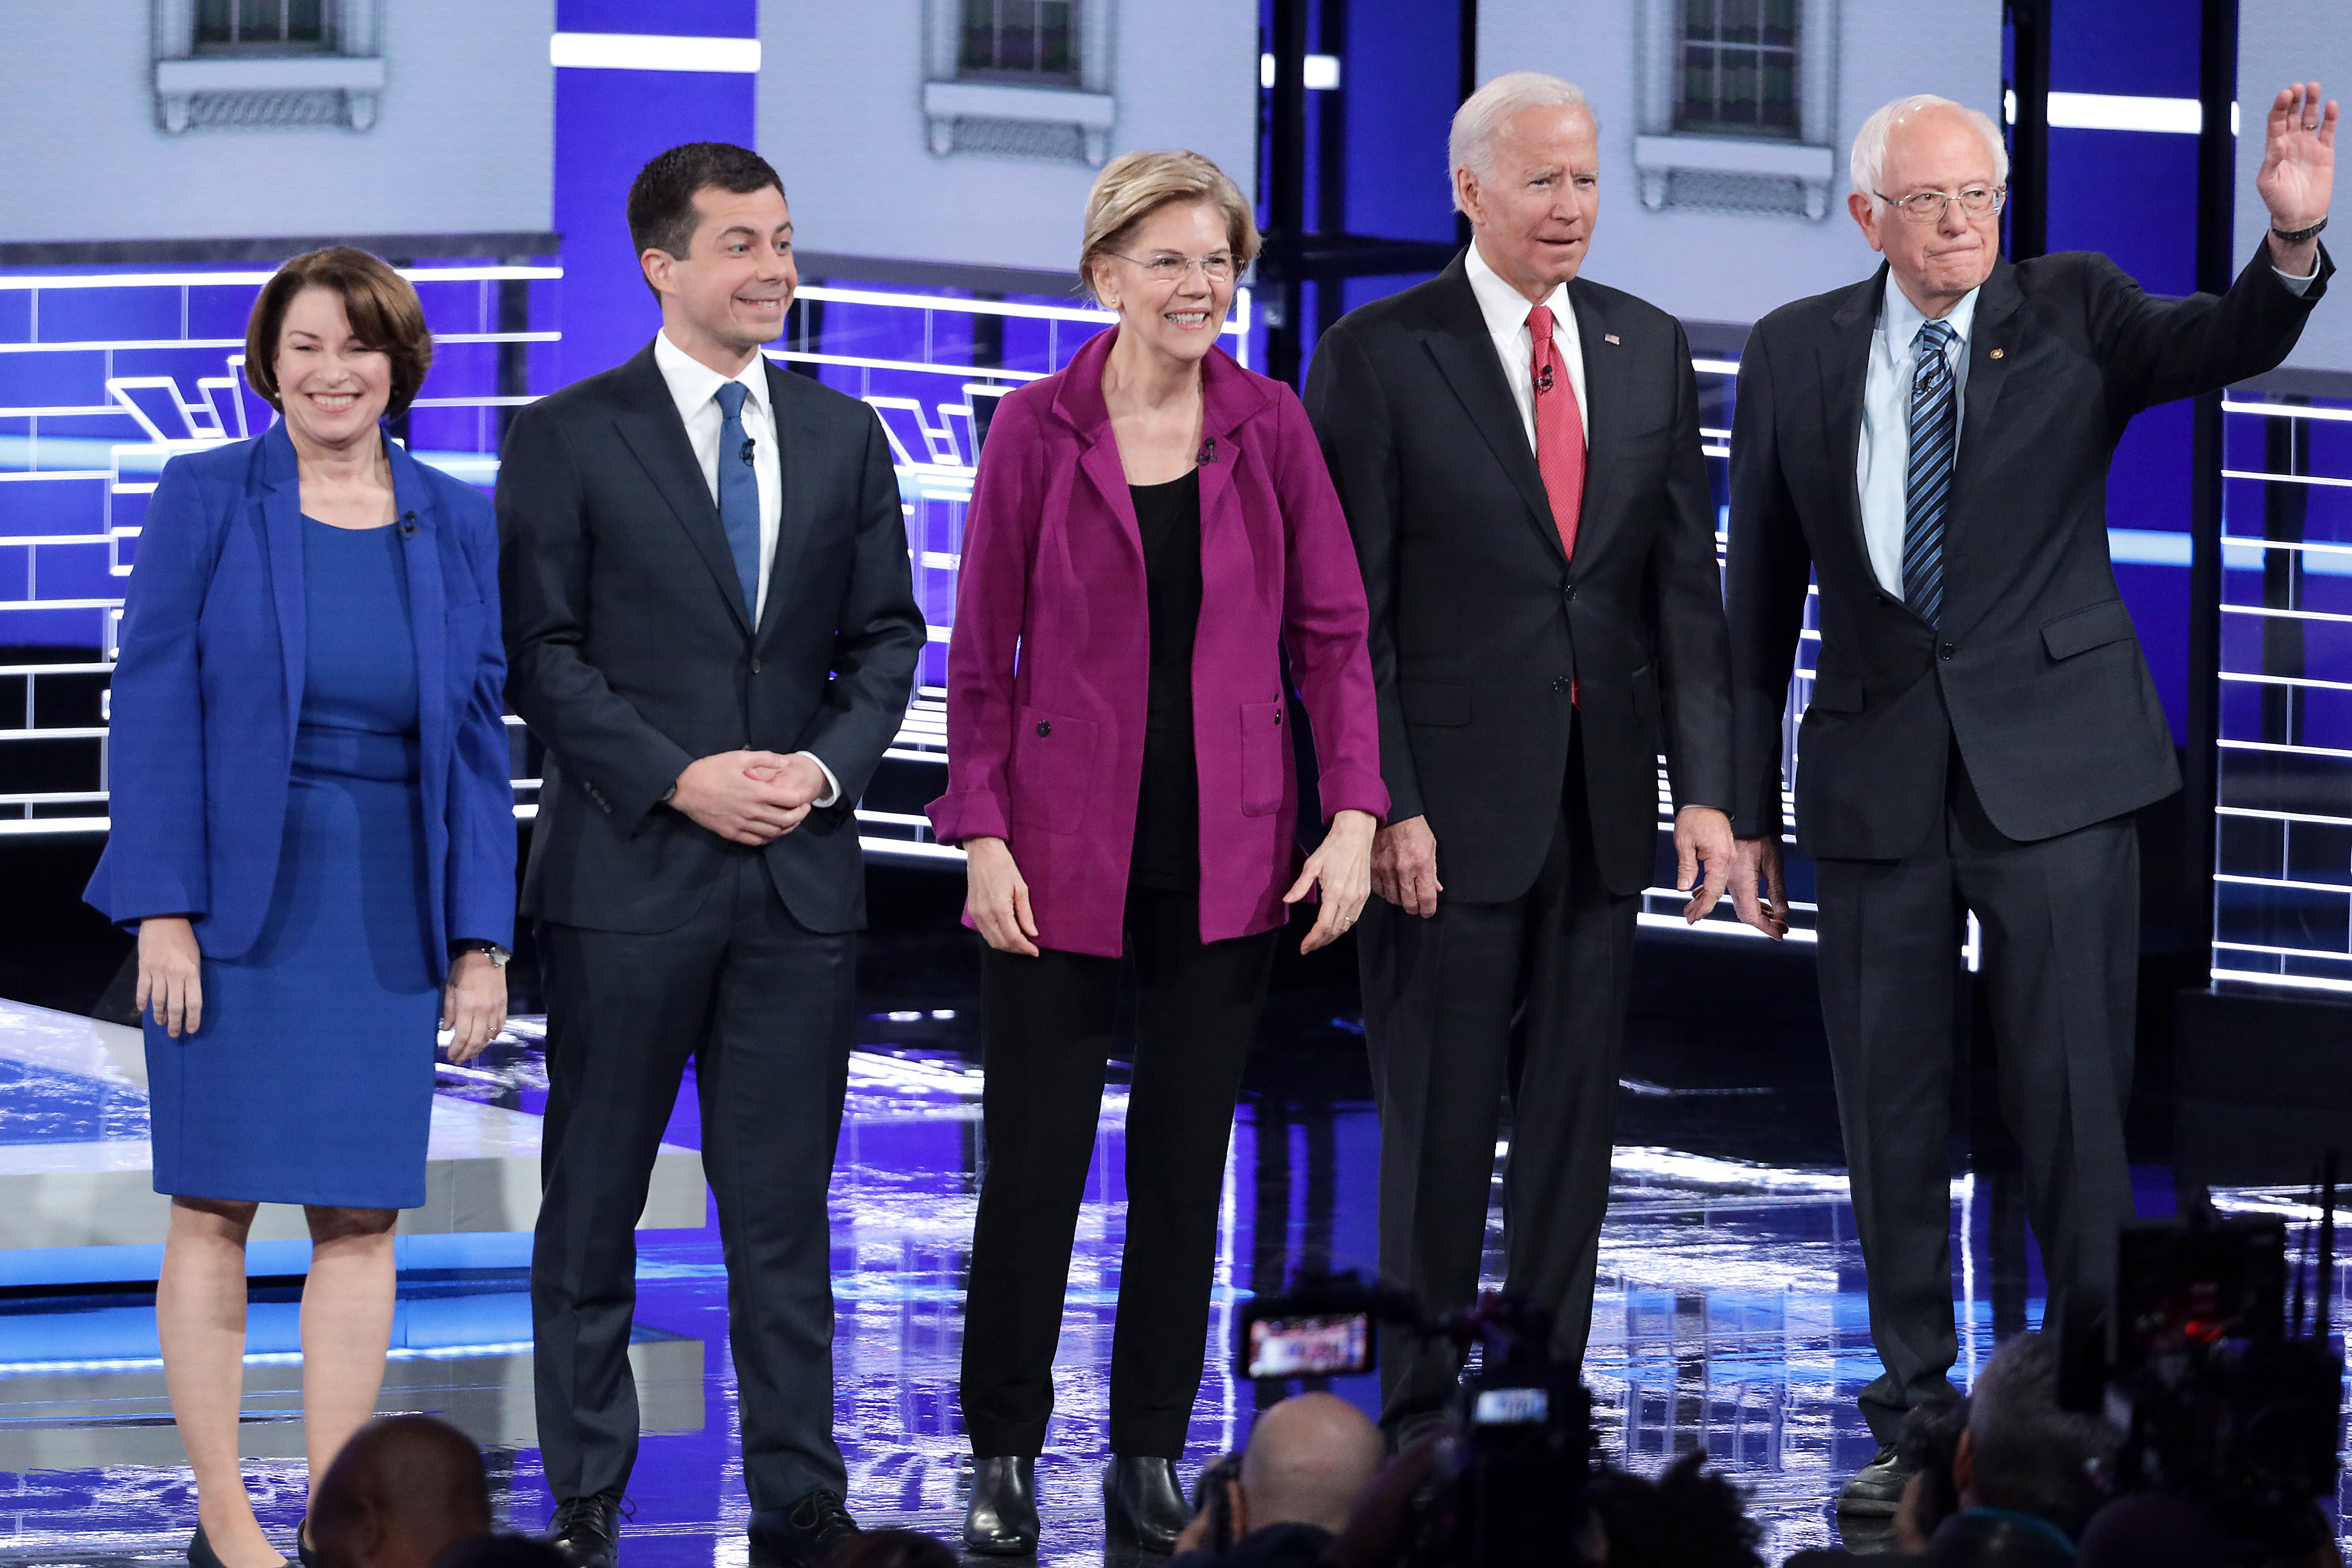 DNC releases qualification rules for South Carolina Democratic debate - Axios